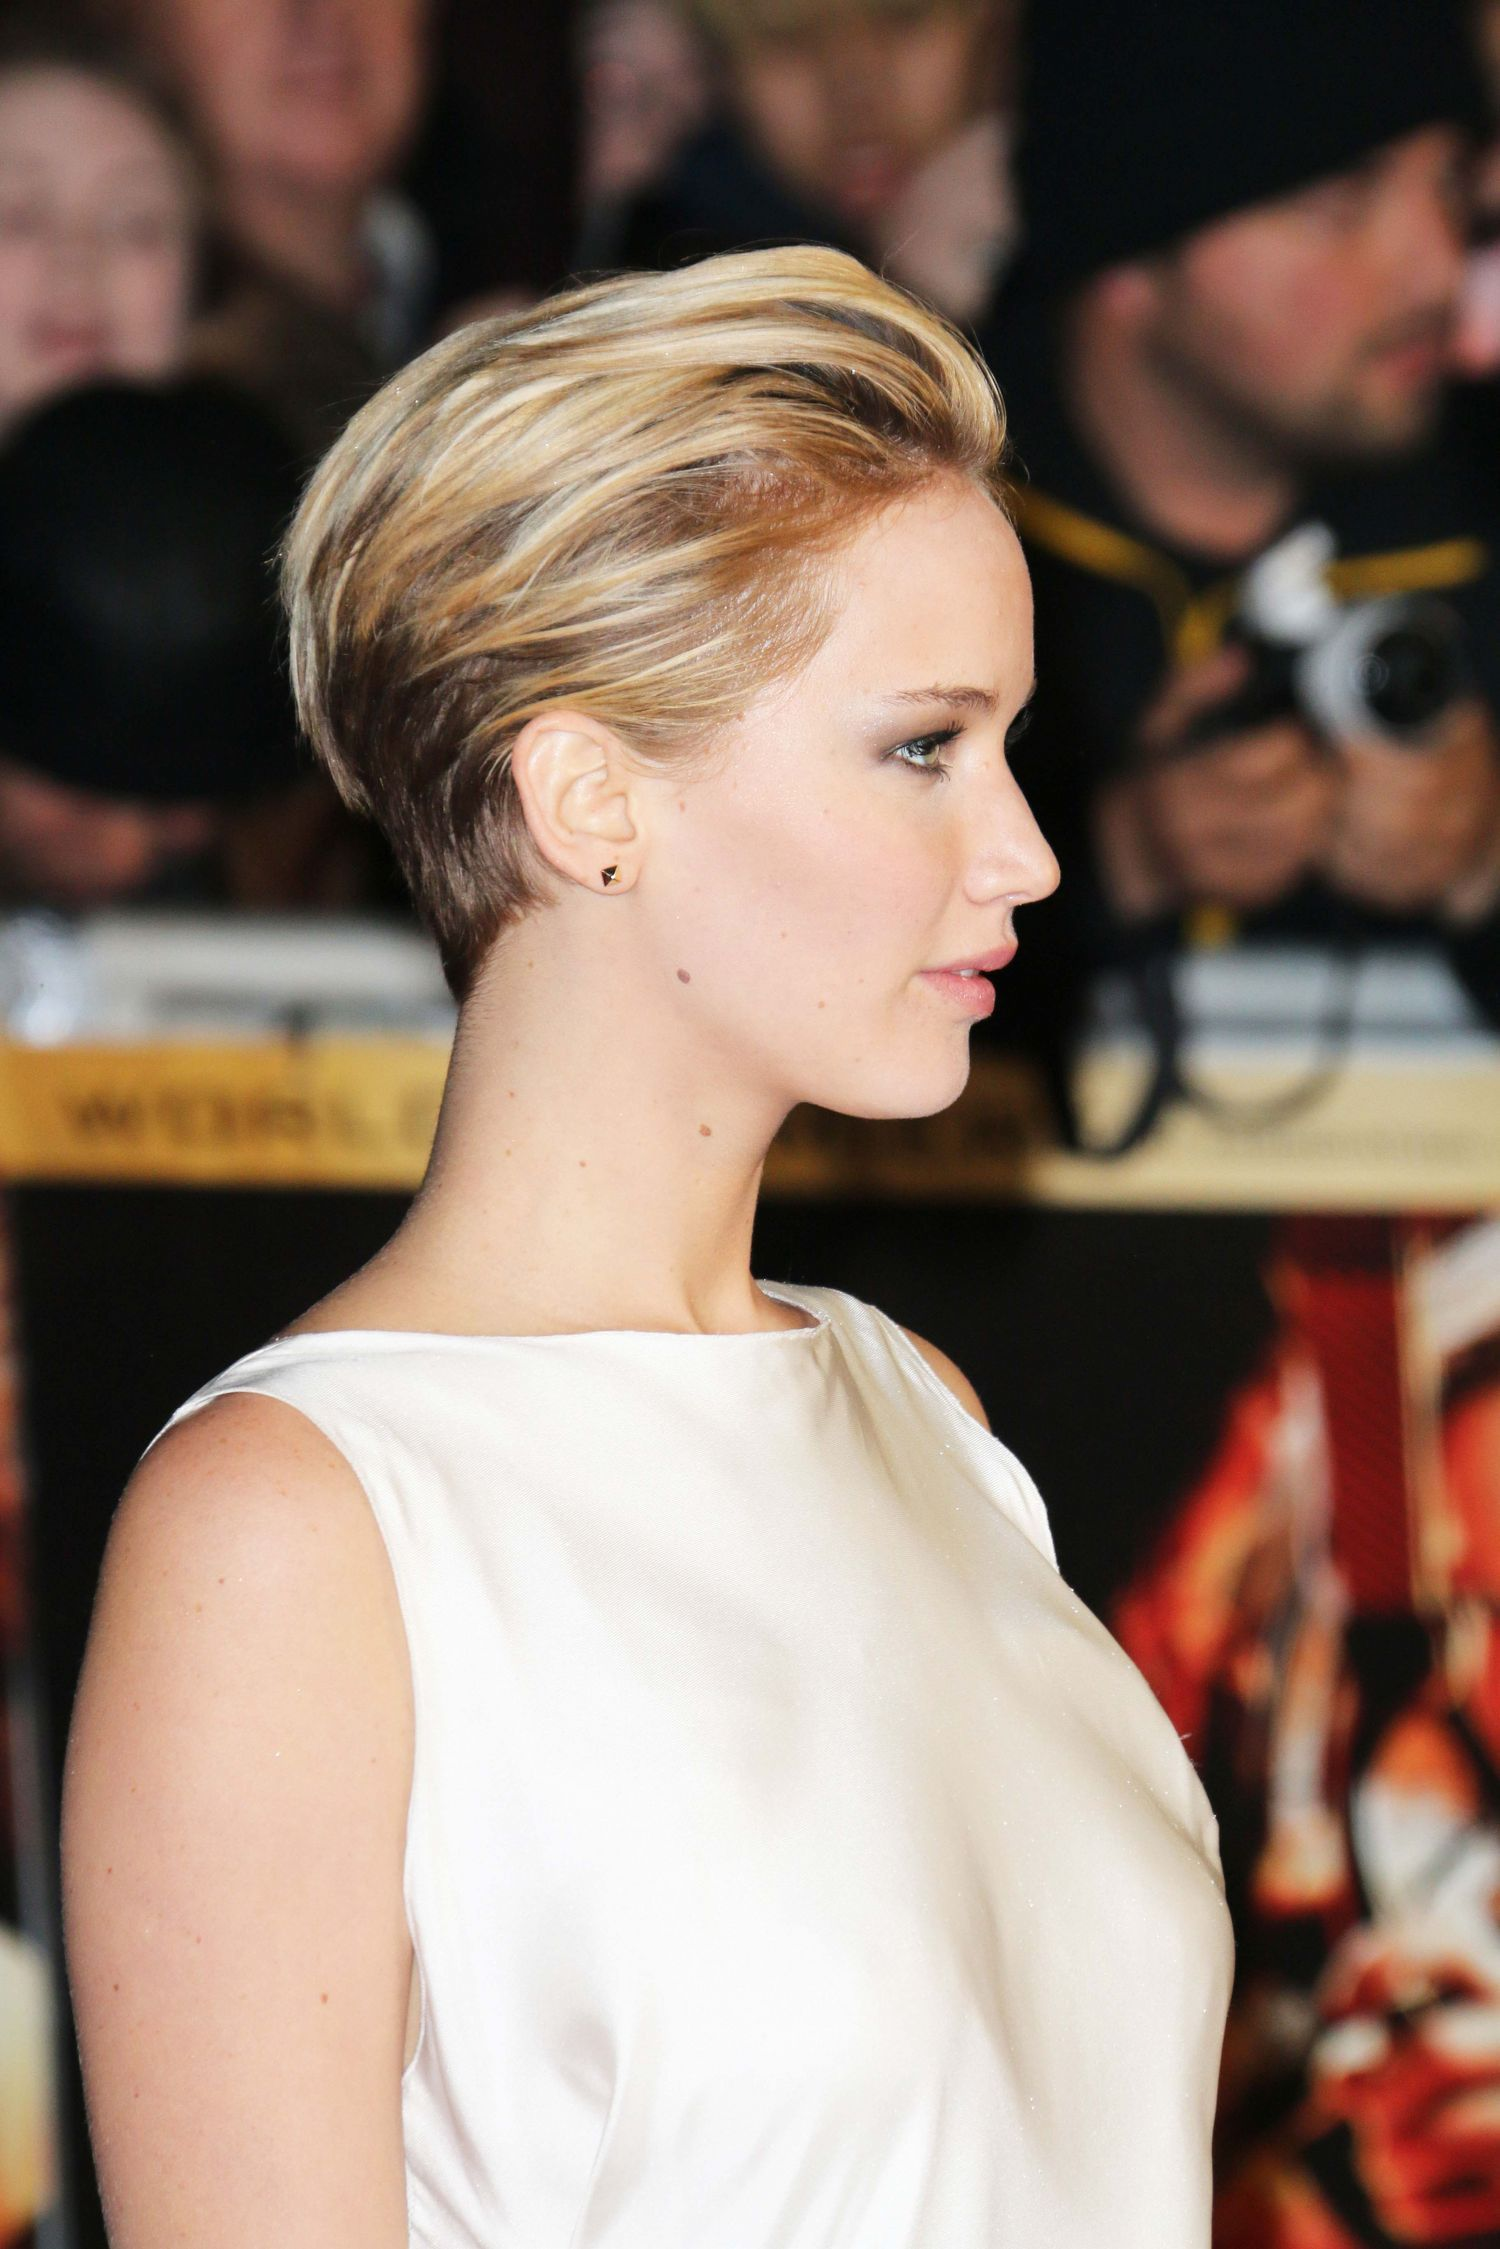 Perfect Red carpet look ヘアー Pinterest Short hair styles